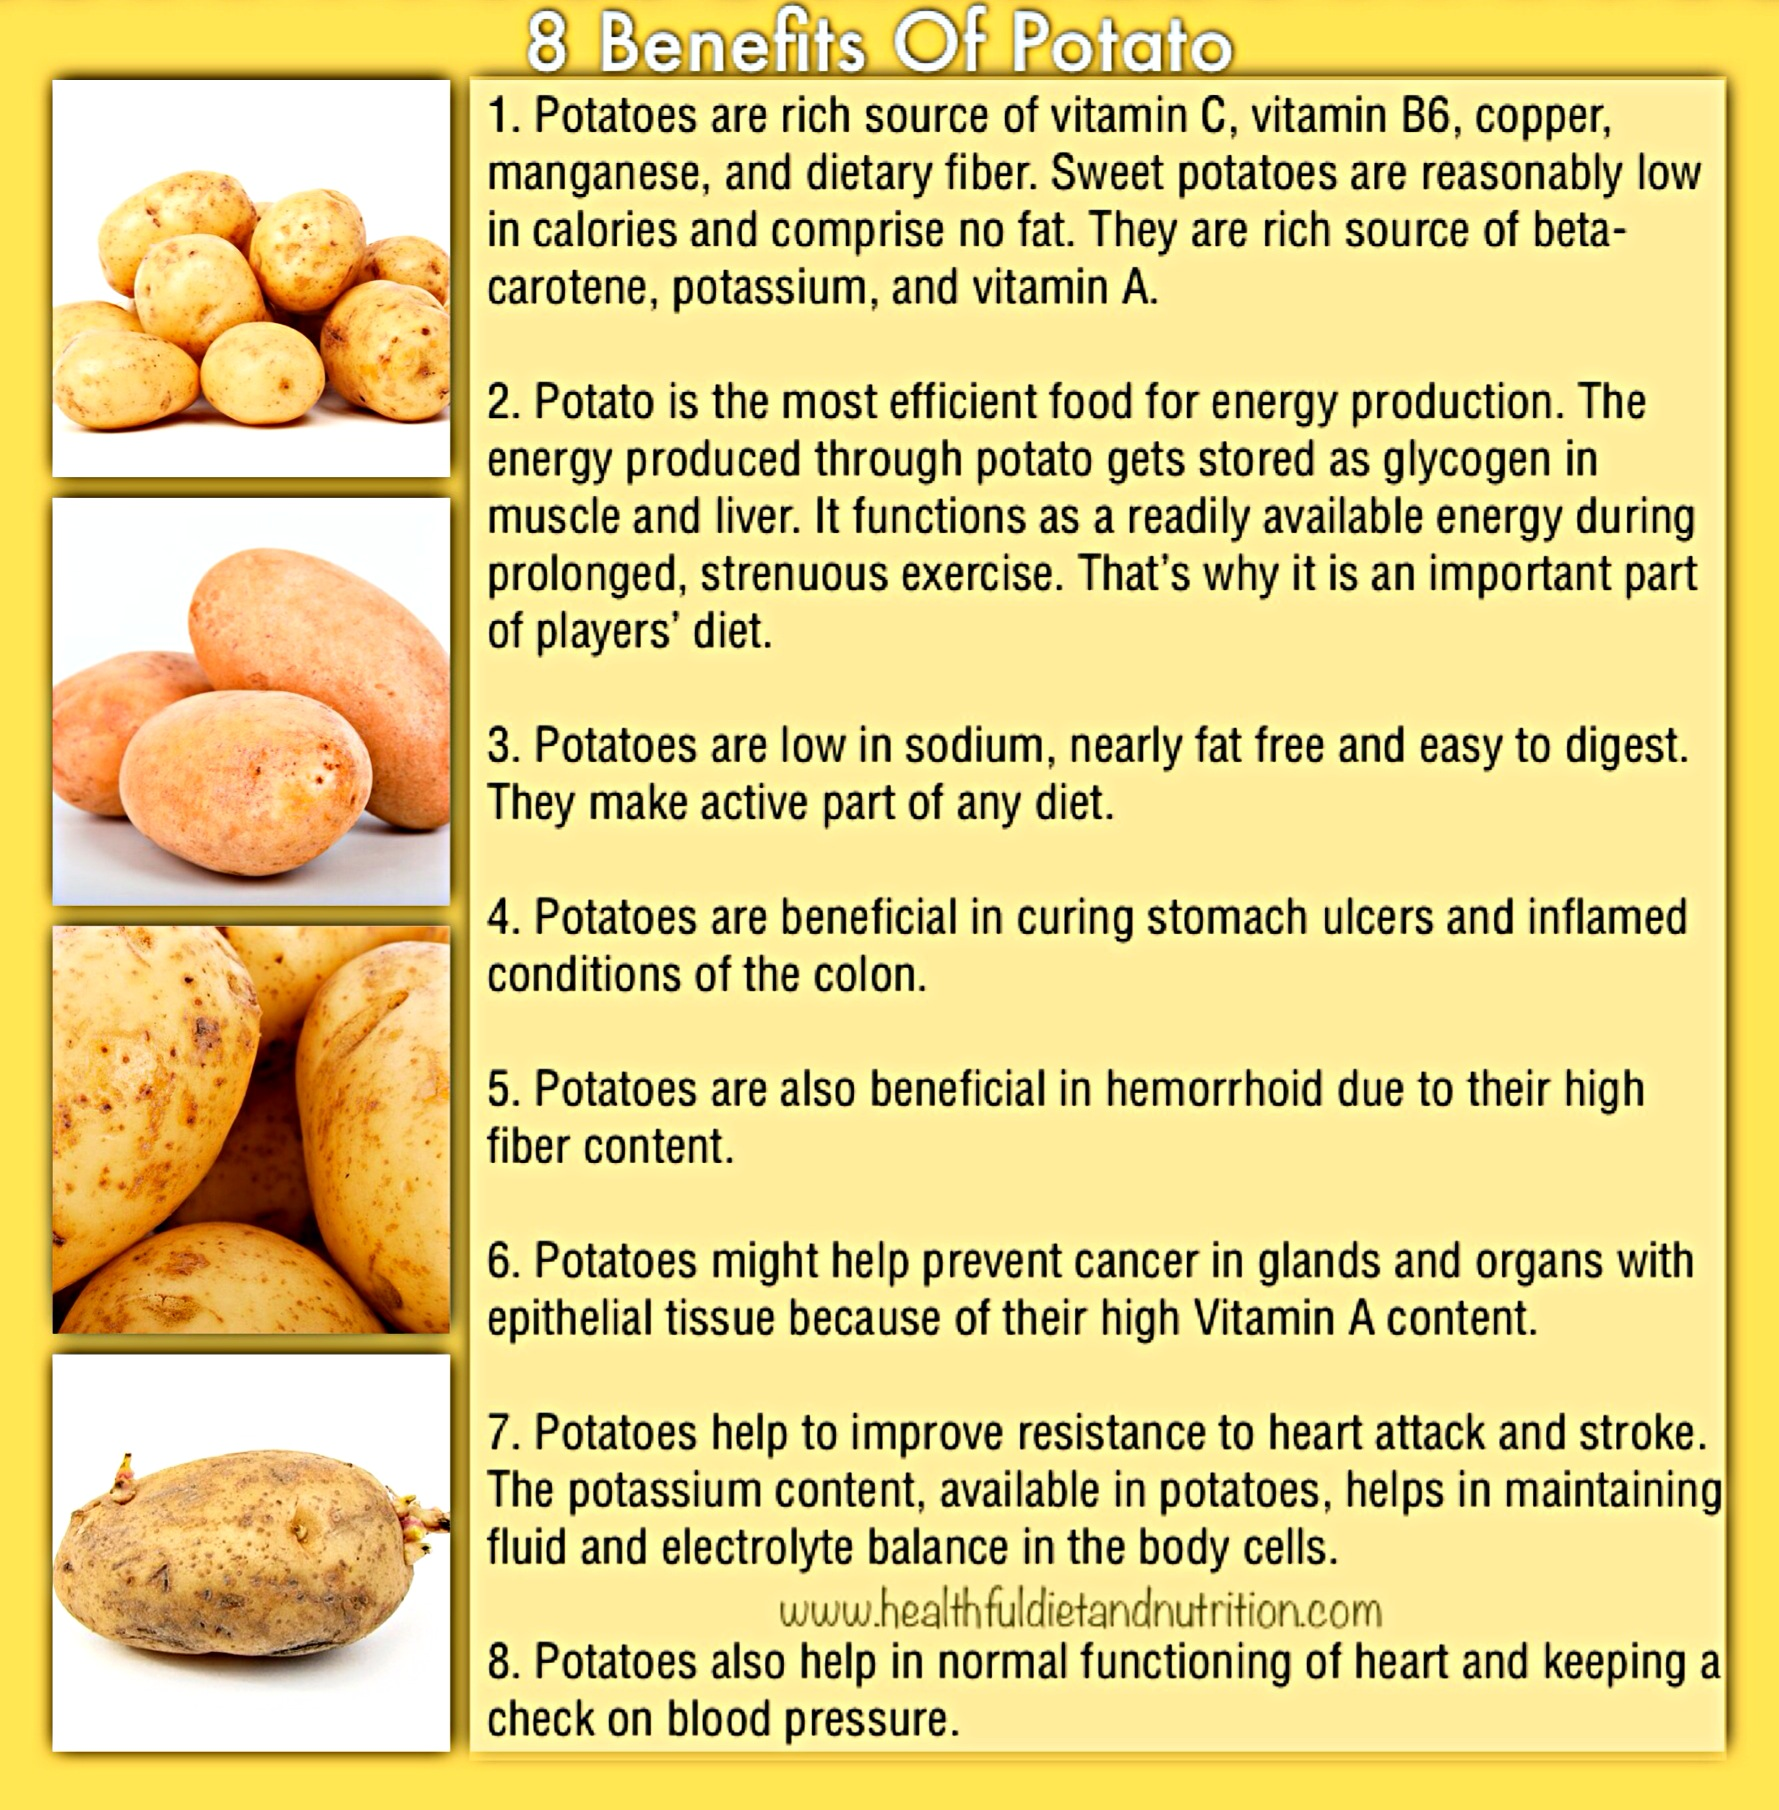 8 Benefits Of Potato